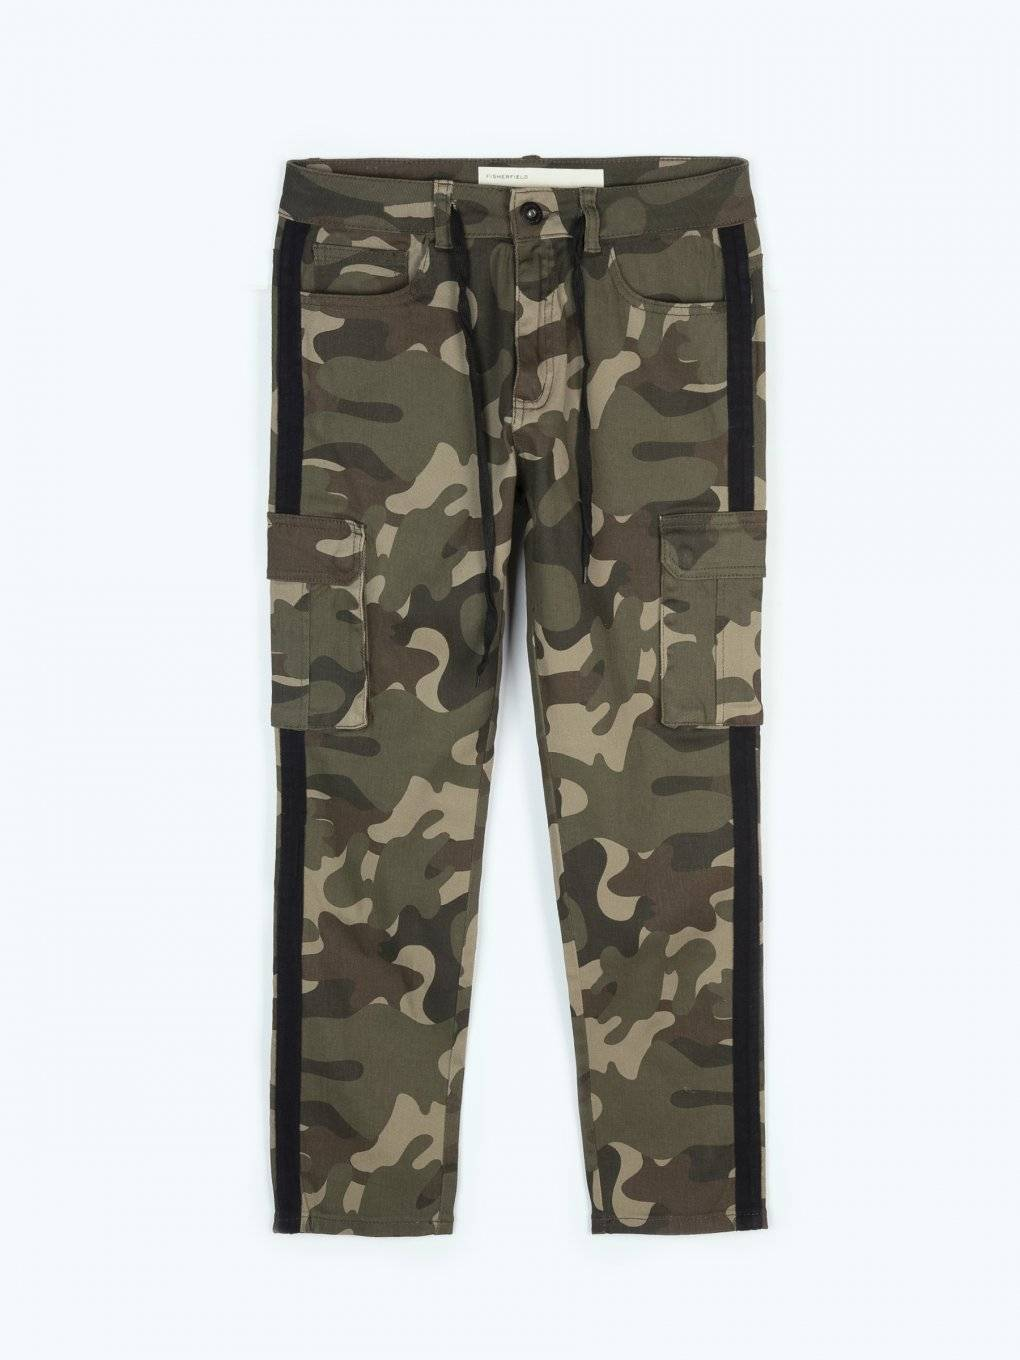 Taped camo print cargo pants